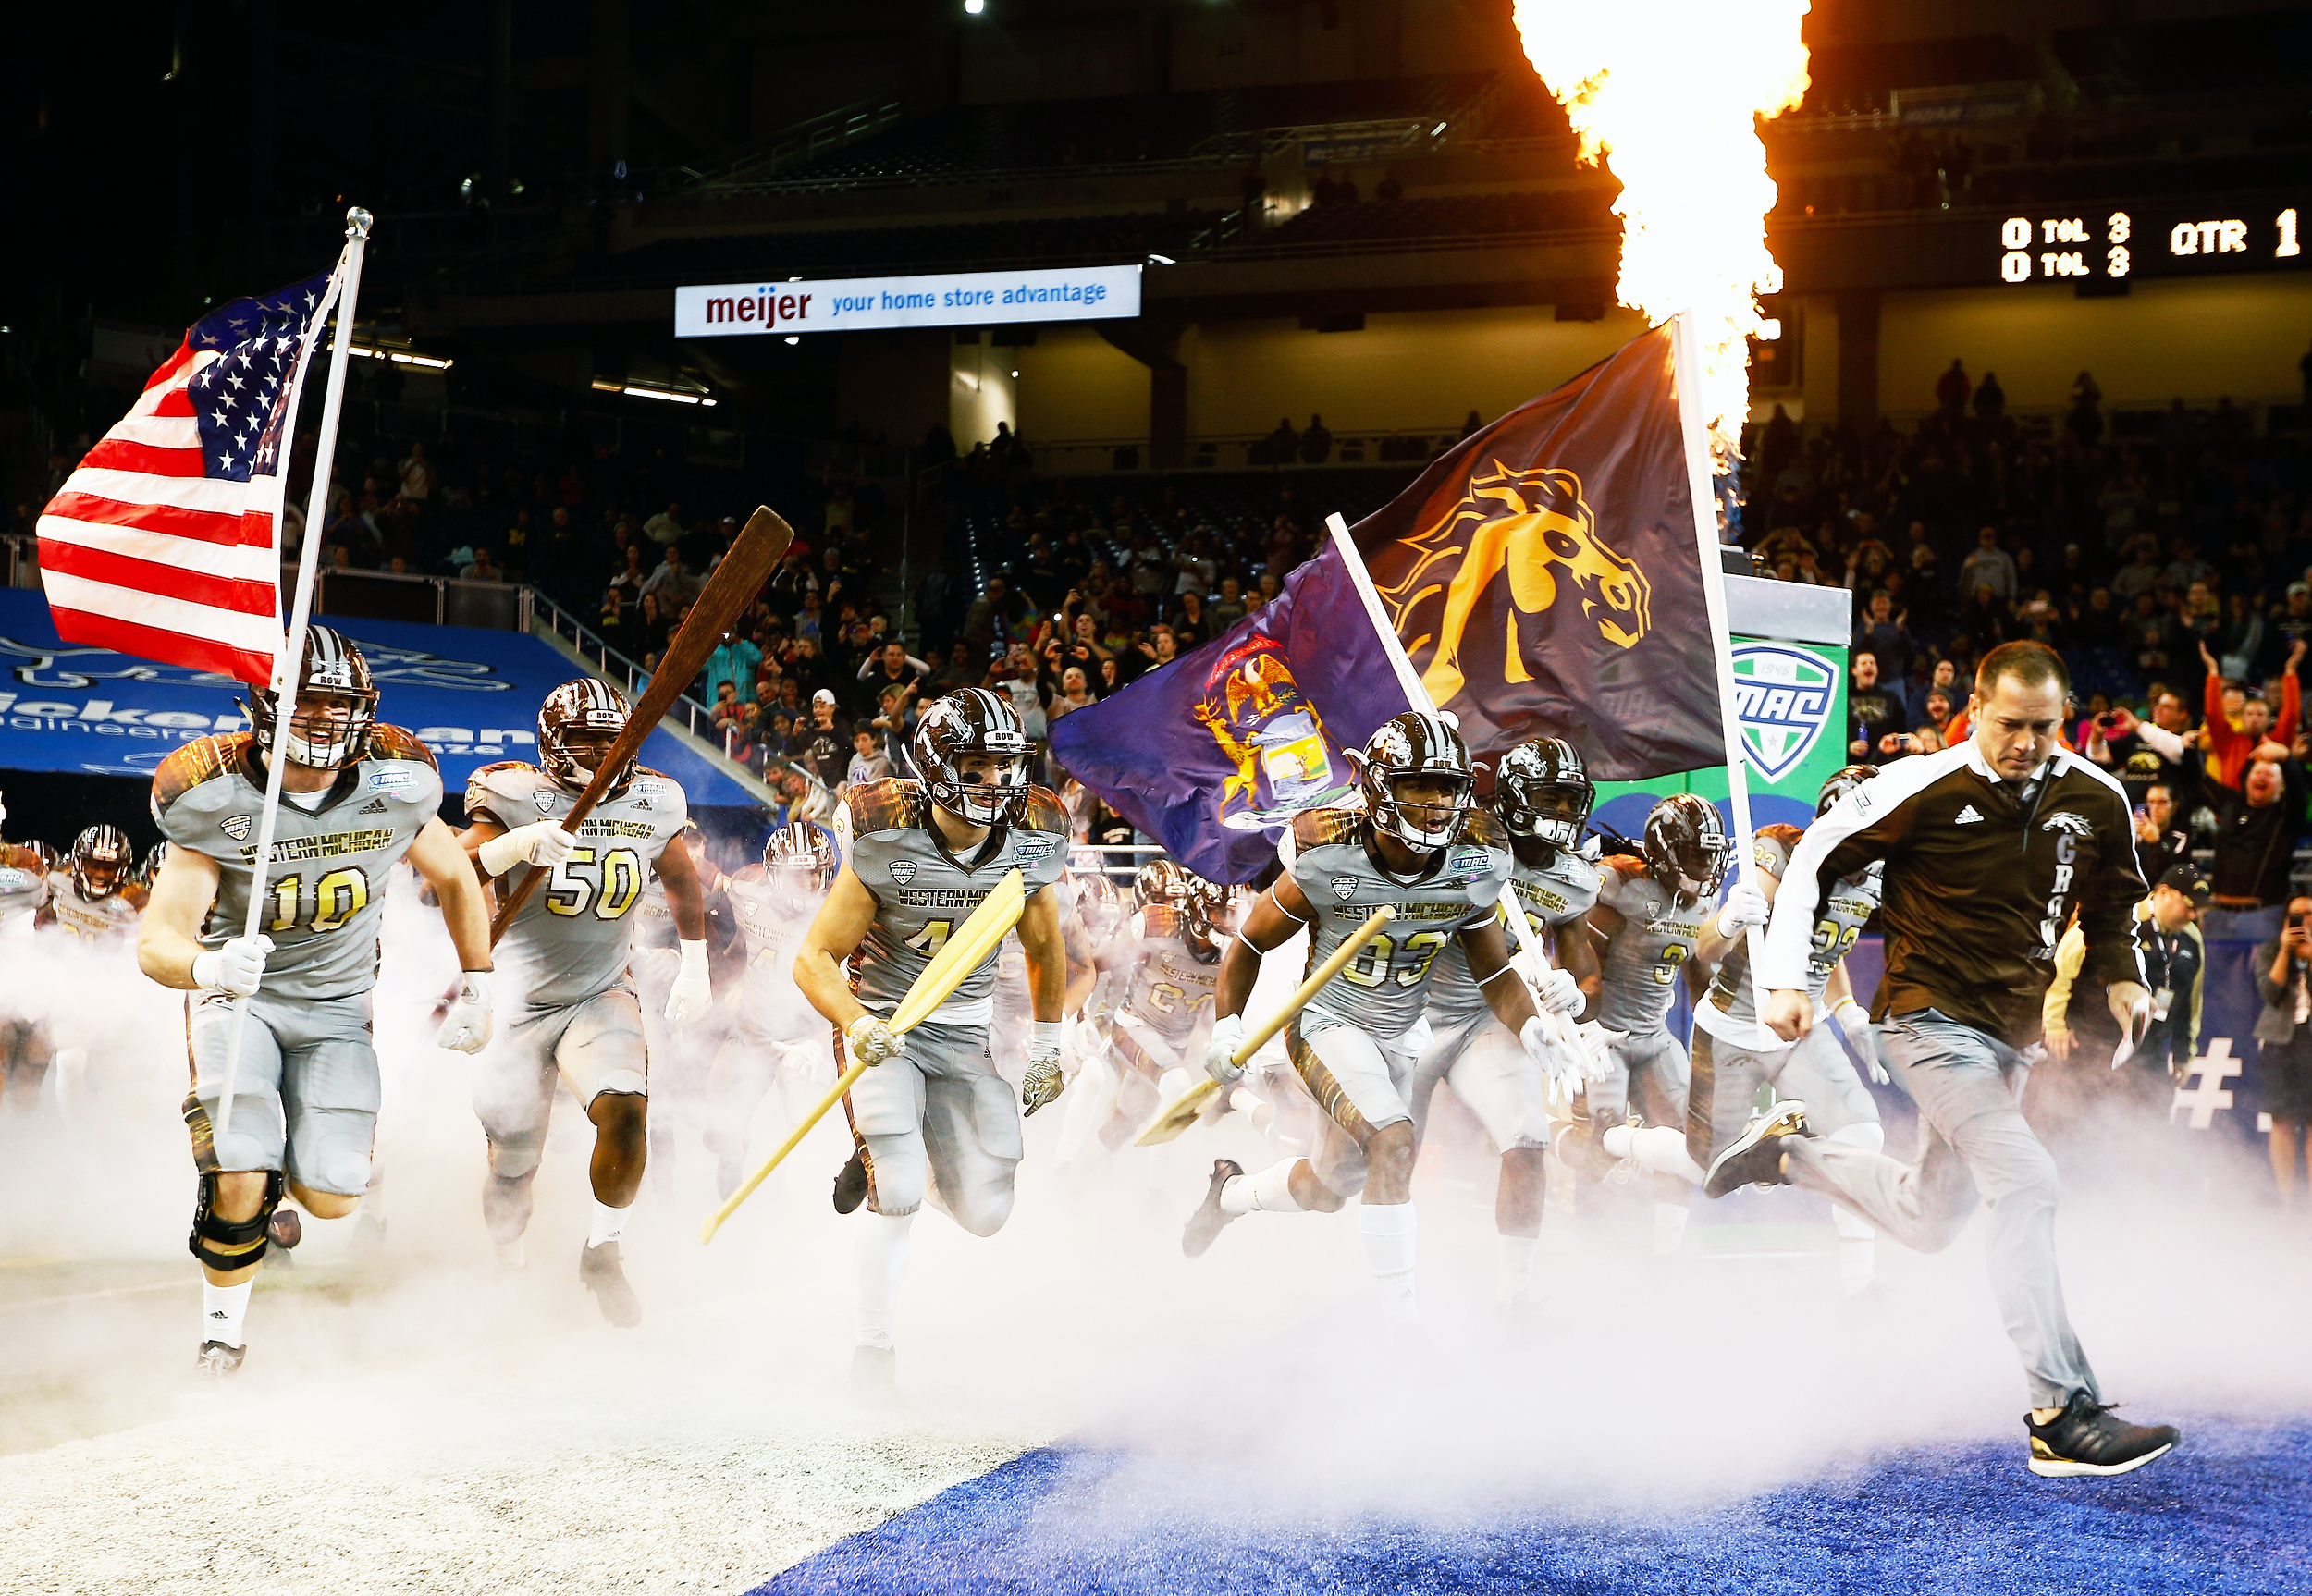 """The Broncos prepare to take on the Ohio Bobcats for the Mid-American Conference championship game at Ford Field in Detroit on Dec. 2, 2016. Bronco players rush the field carrying oars, a gesture symbolizing their mantra, """"Row the Boat."""" Broncos' coach P.J. Fleck began the tradition following his son's death in 2011. He uses the saying to encourage his players to never give up."""